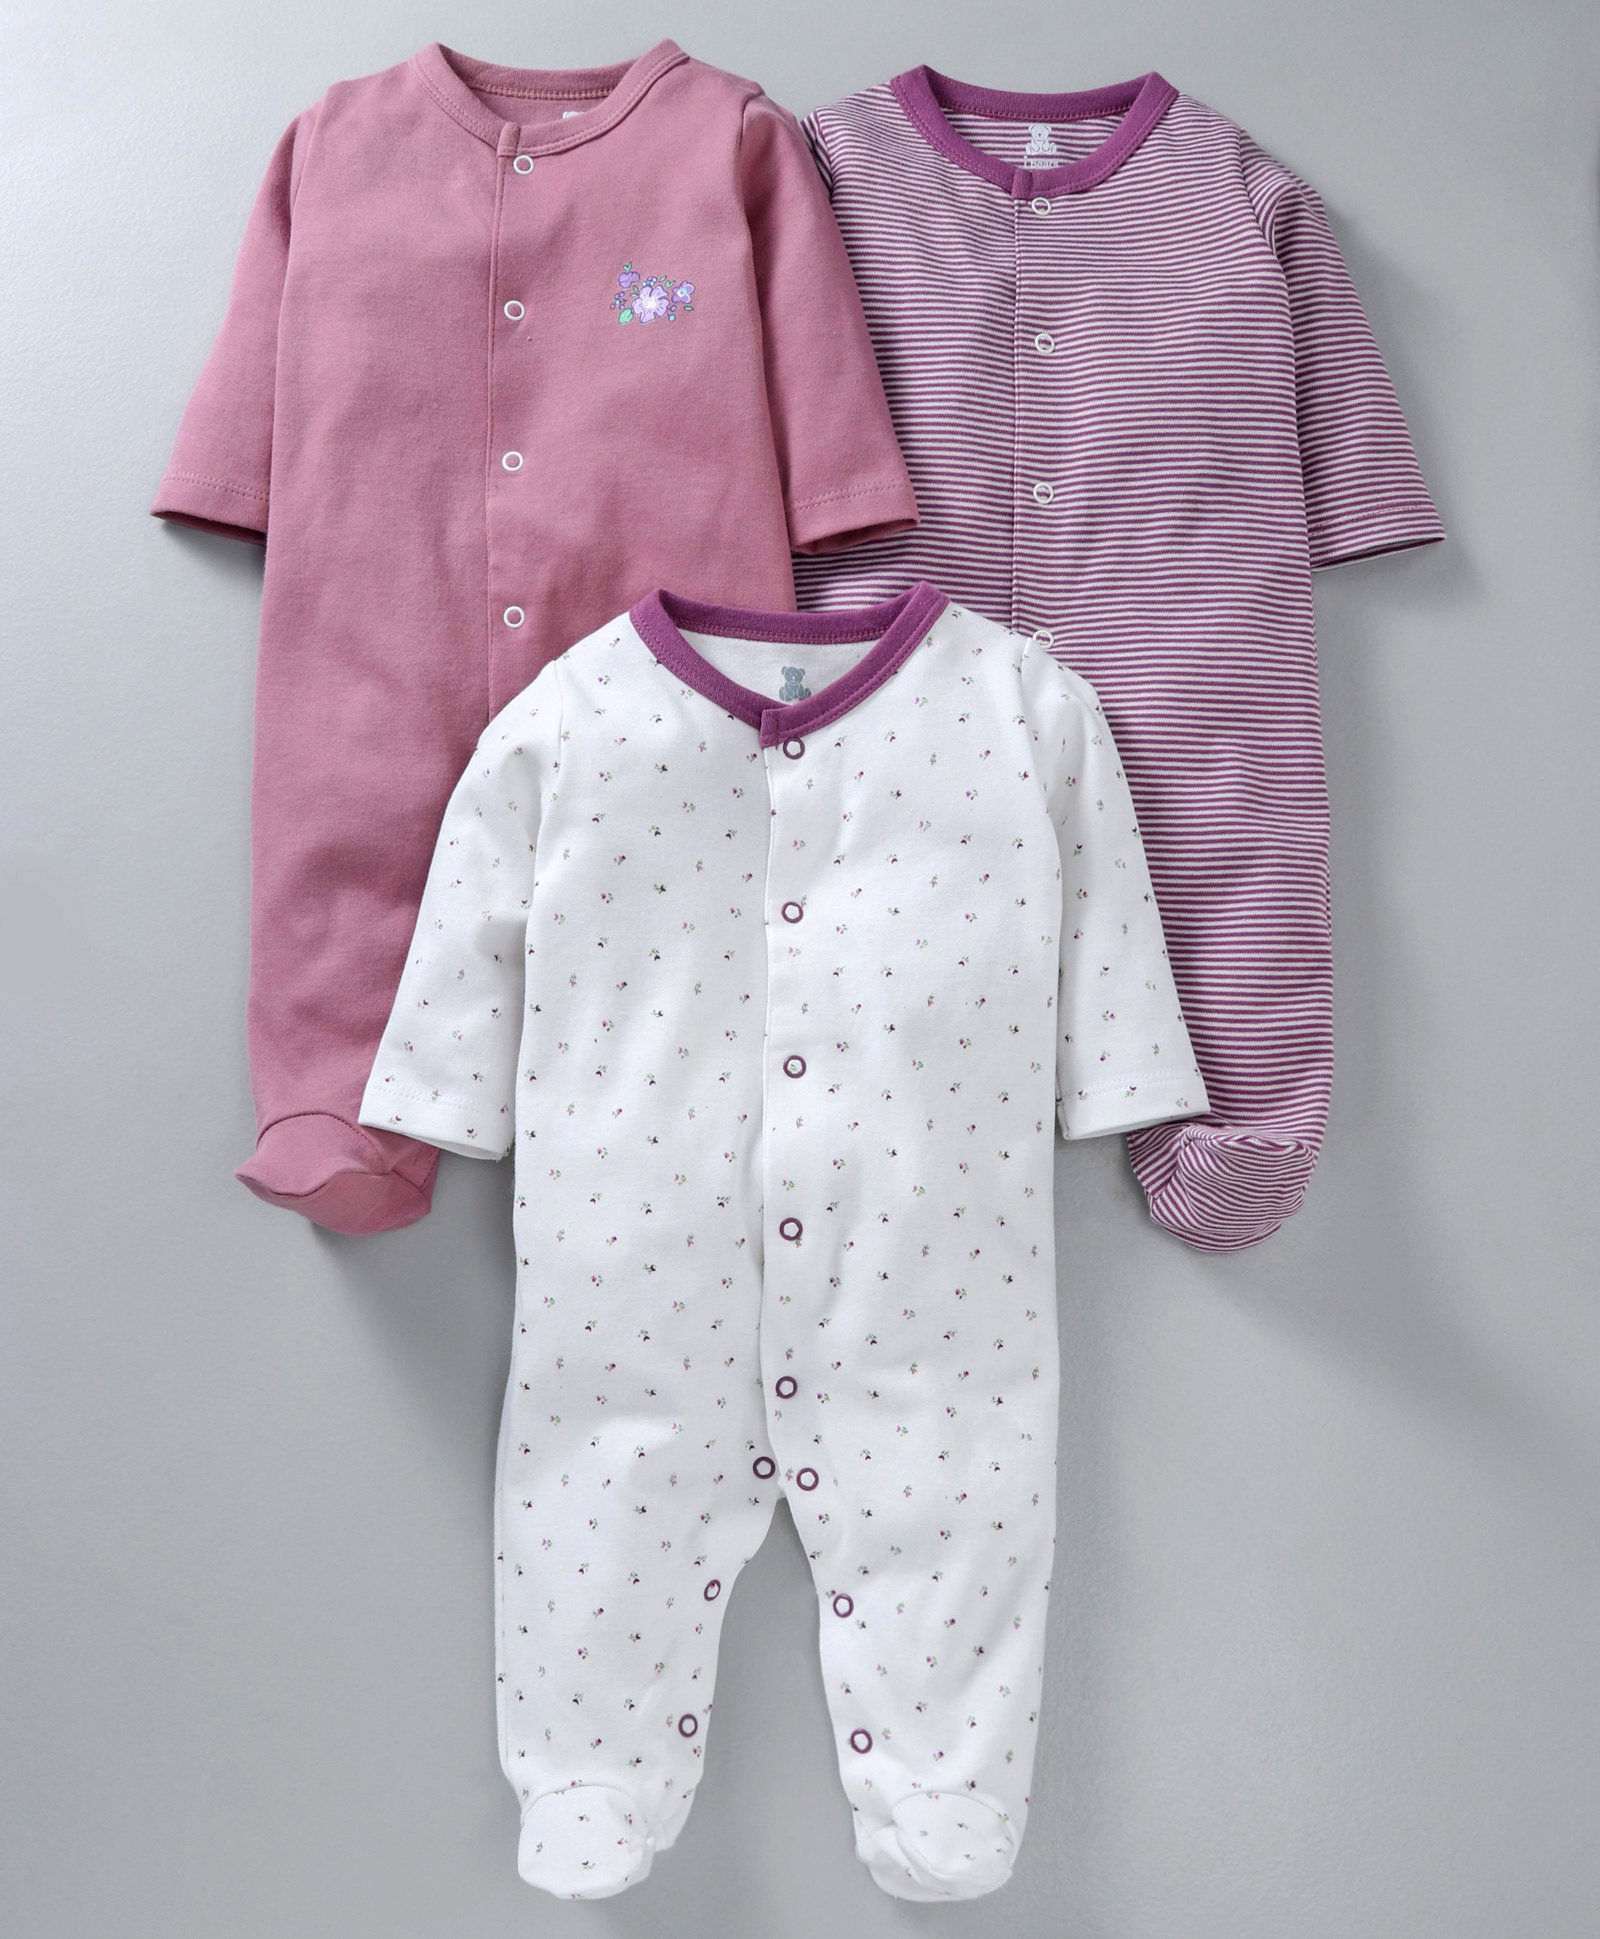 90b3b619a I Bears Full Sleeves Footed Rompers Pack of 3 - White, Pink & Purple